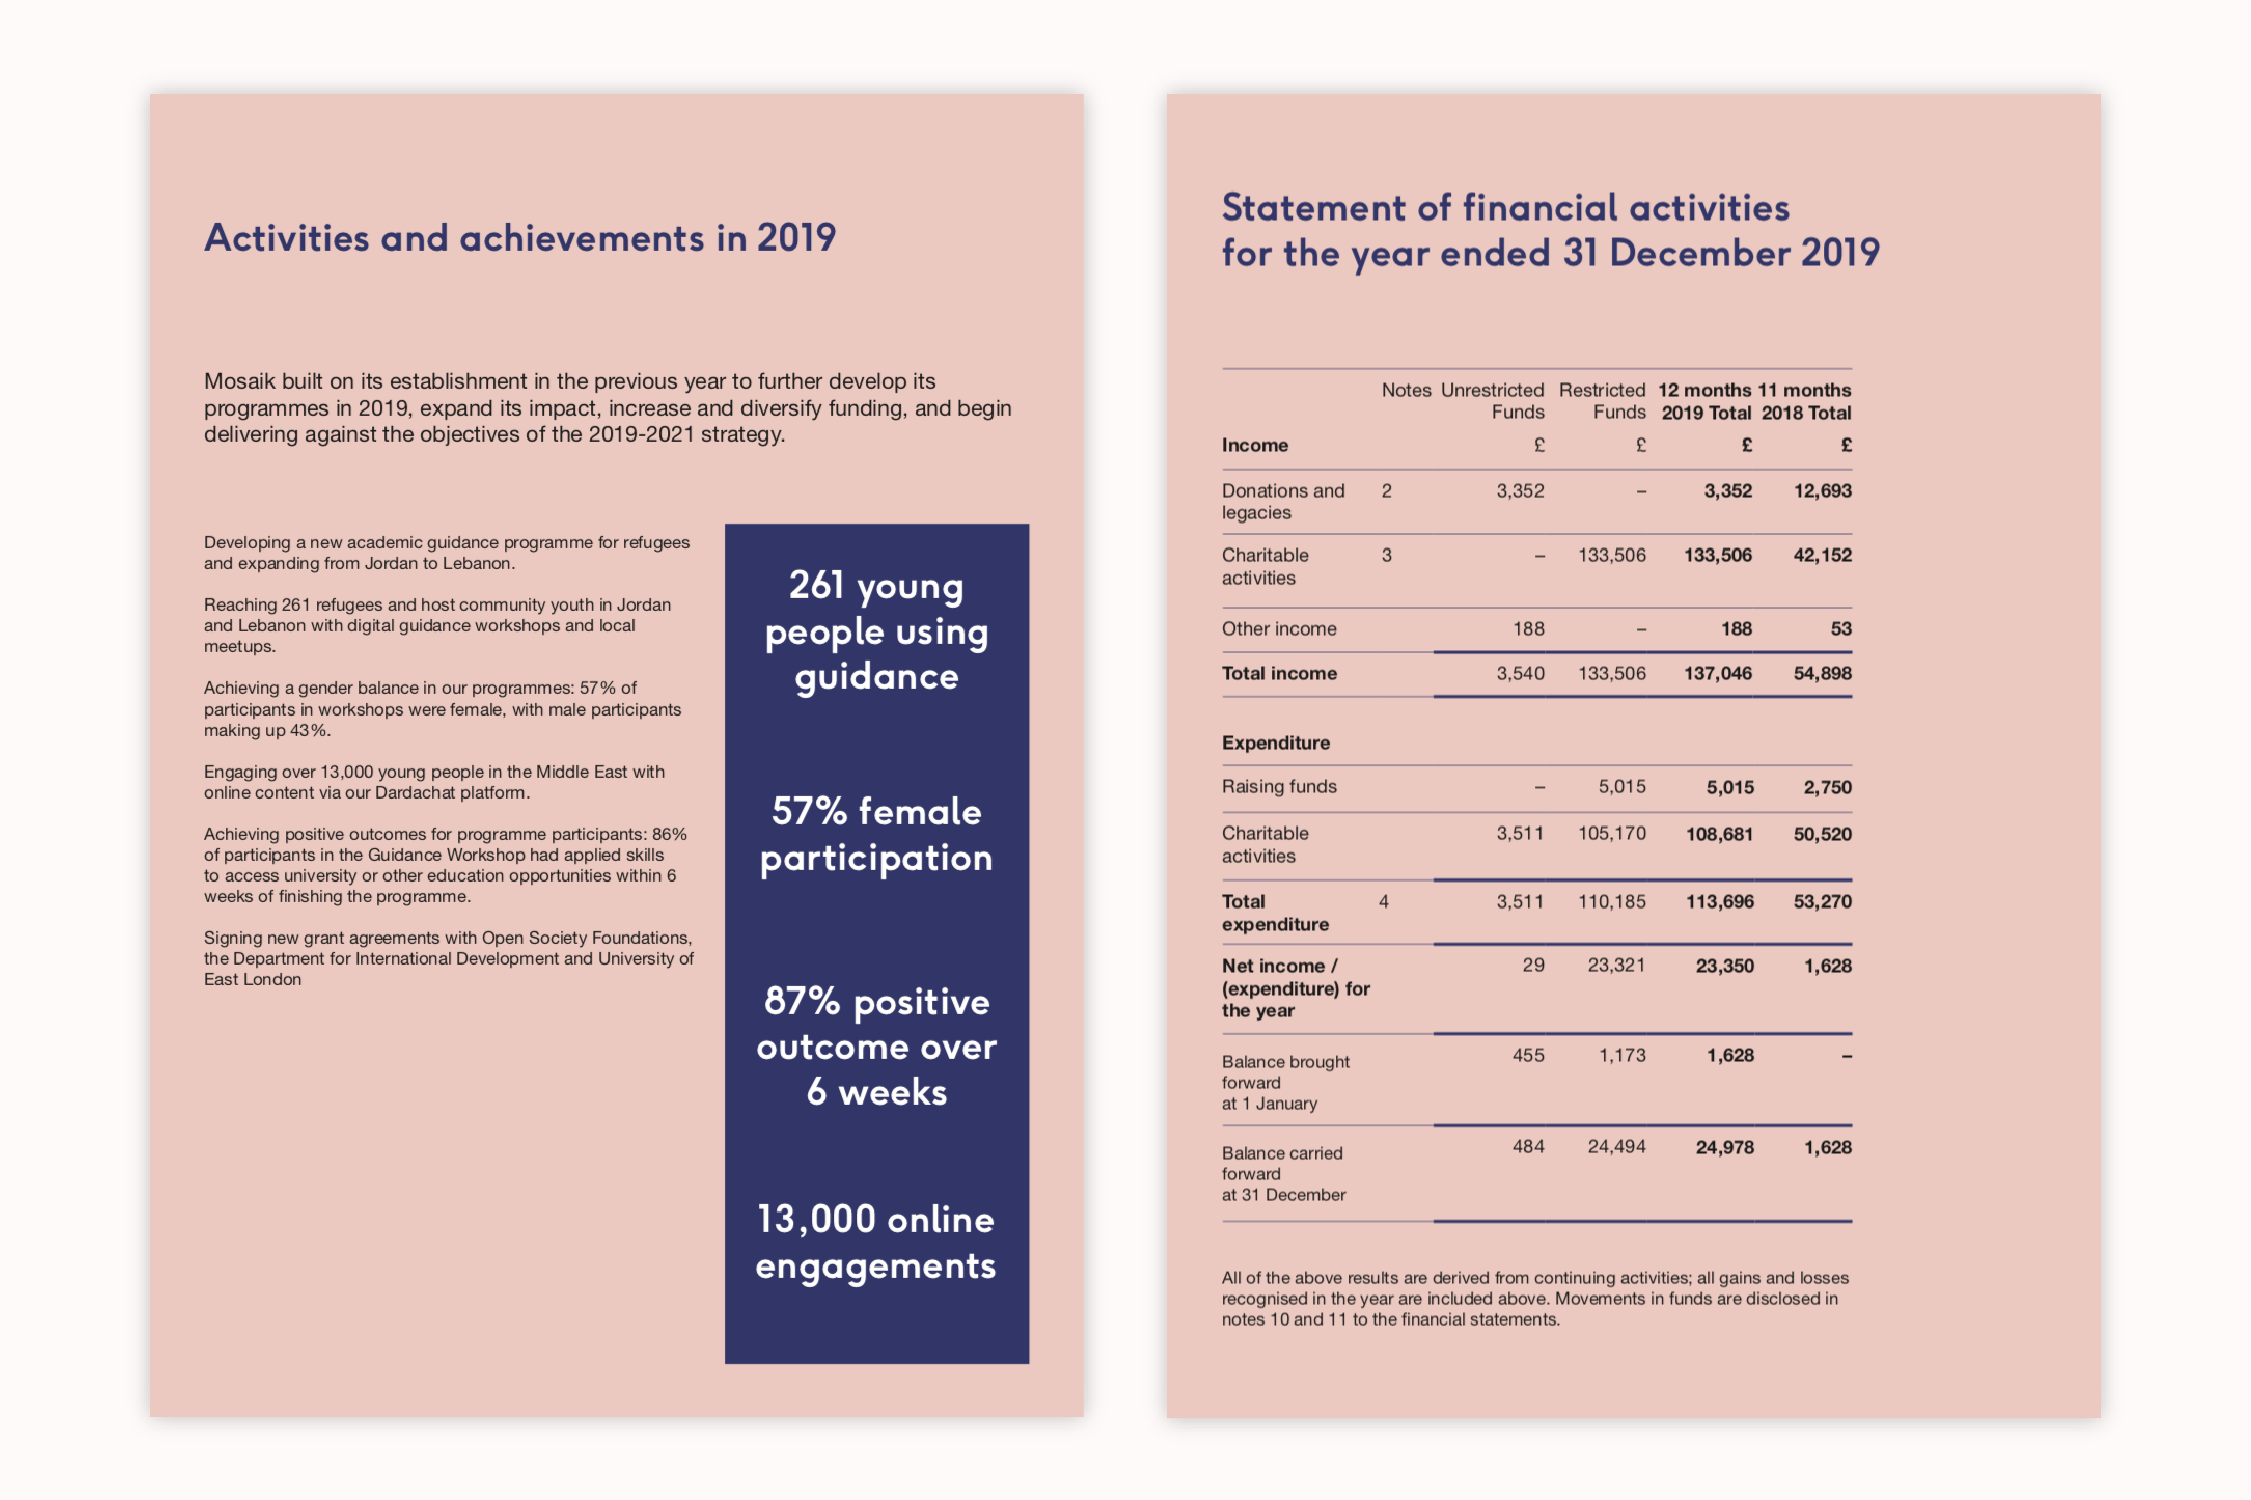 The annual report showing financial information